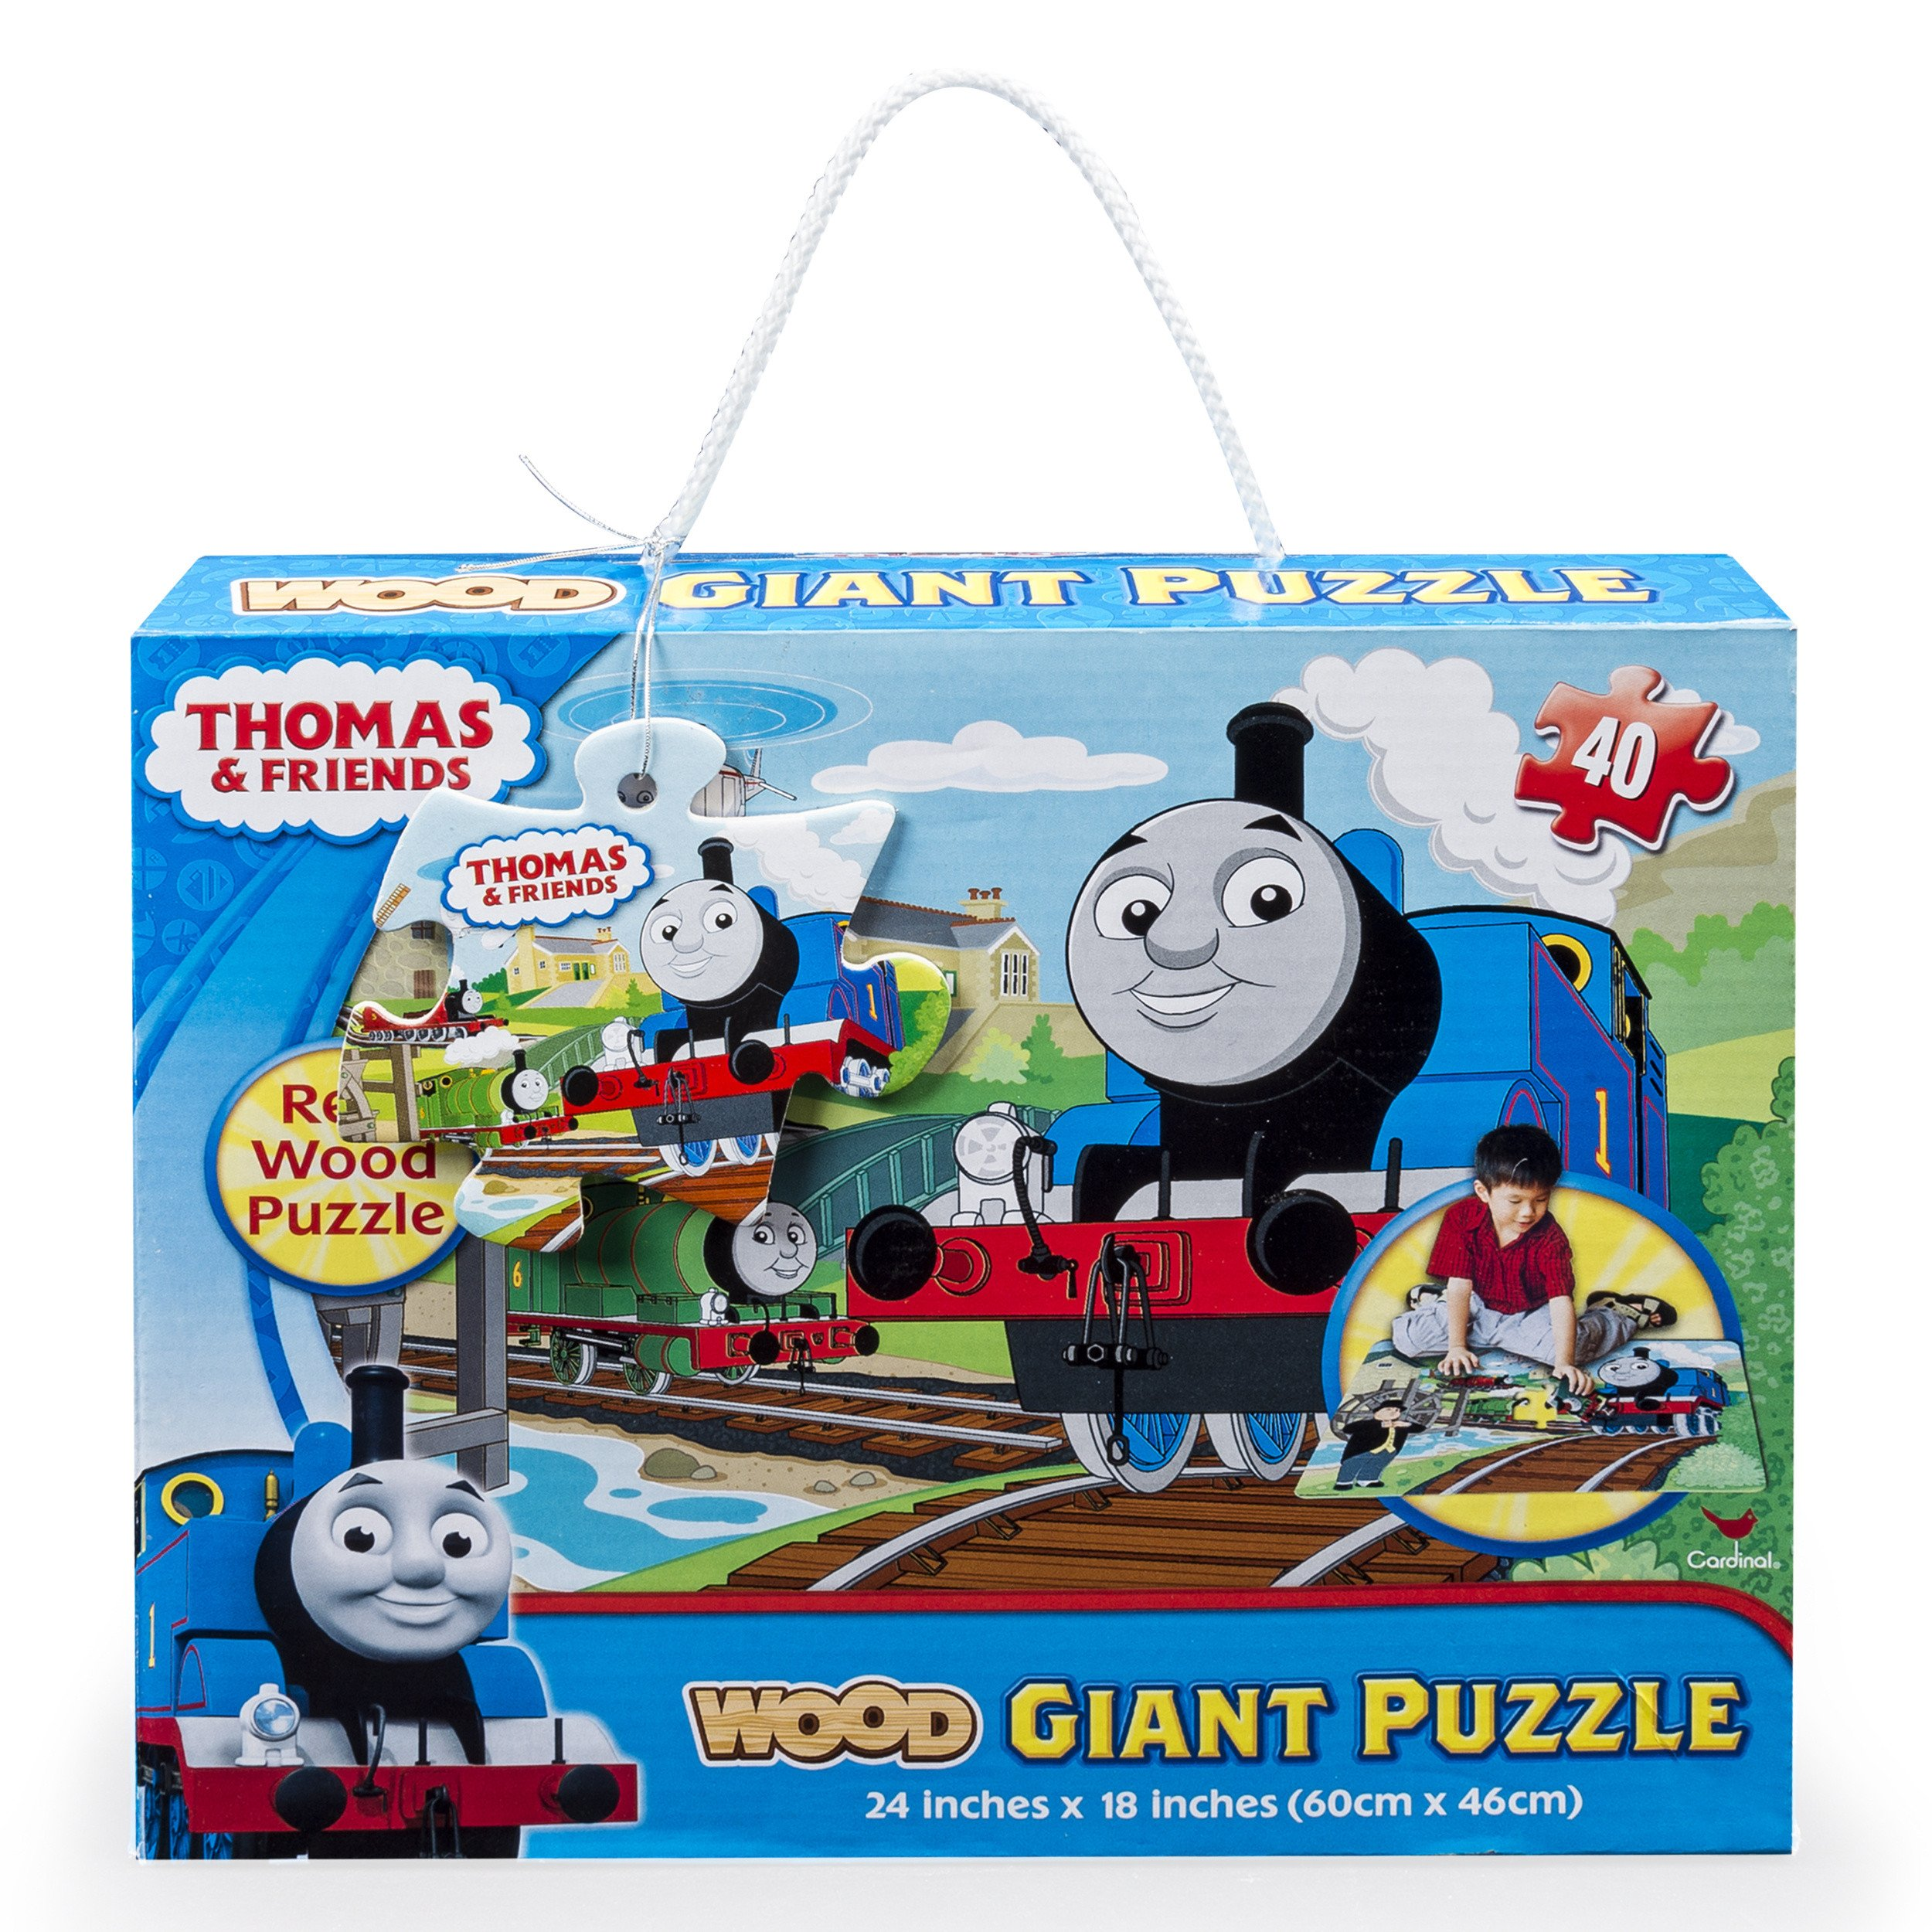 Thomas the Train Bedroom Decor Beautiful Thomas and Friends Giant 40 Piece Wood Floor Puzzle Walmart